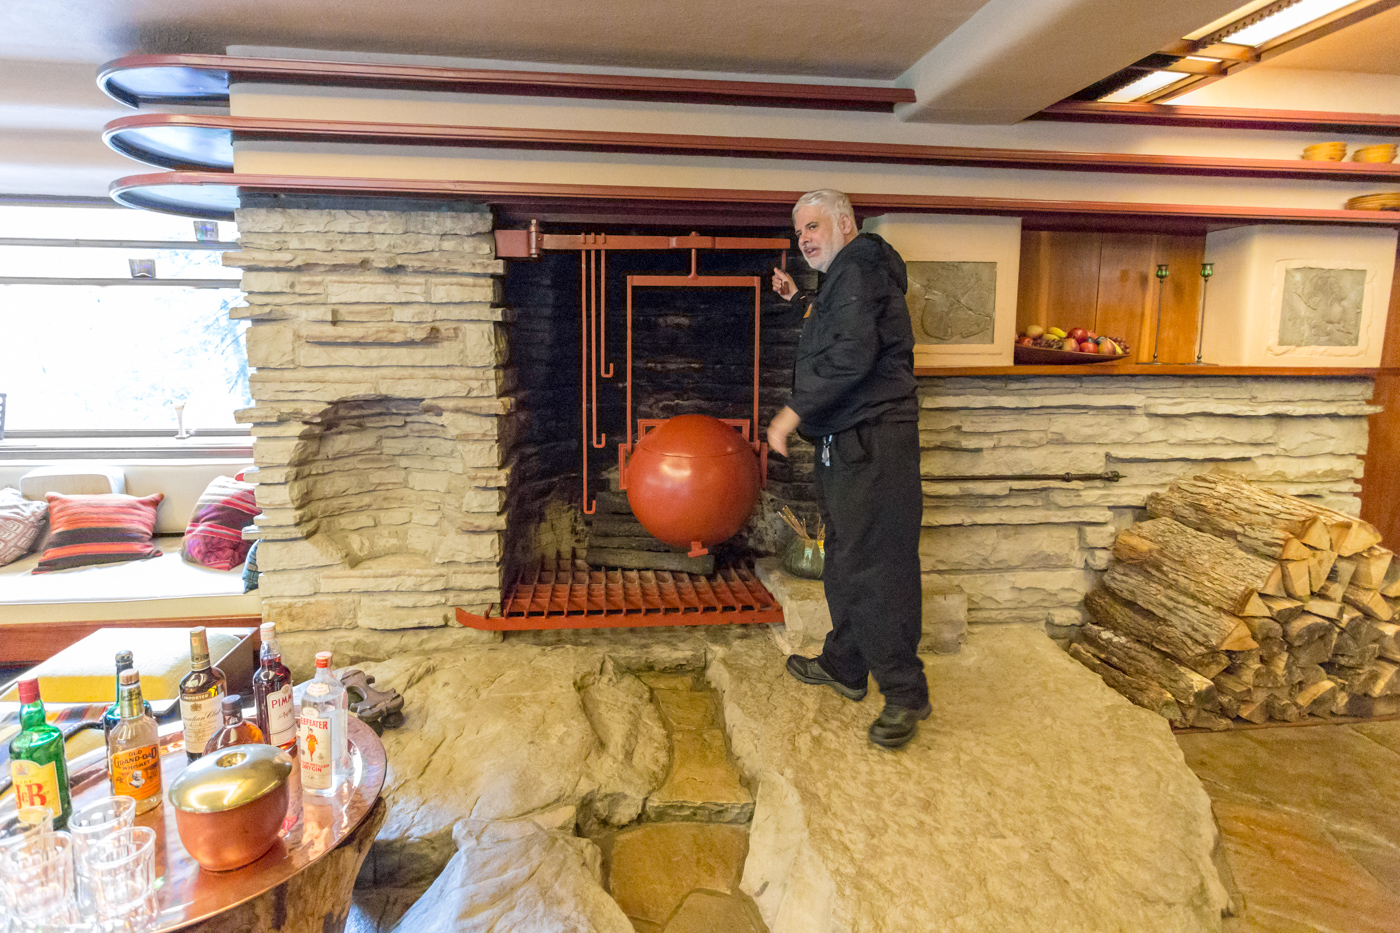 Ken standing on the boulder hearth